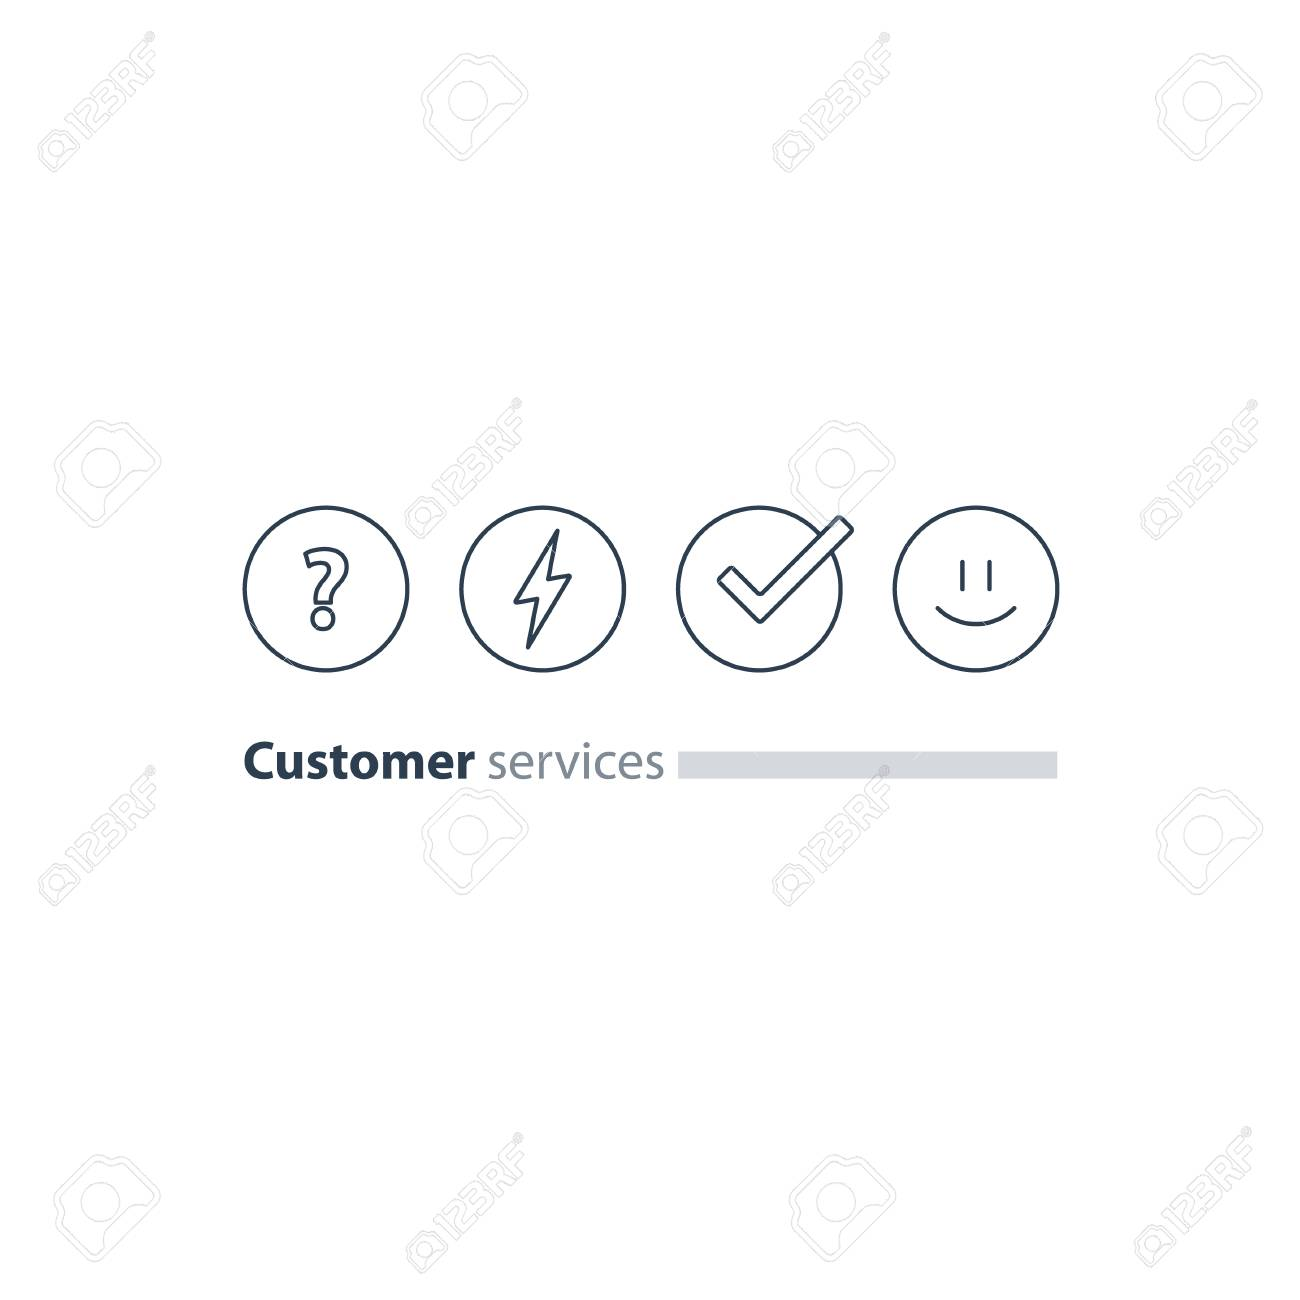 Good Experience Happy Emoji Icon Customer Support Services Feedback Concept Survey